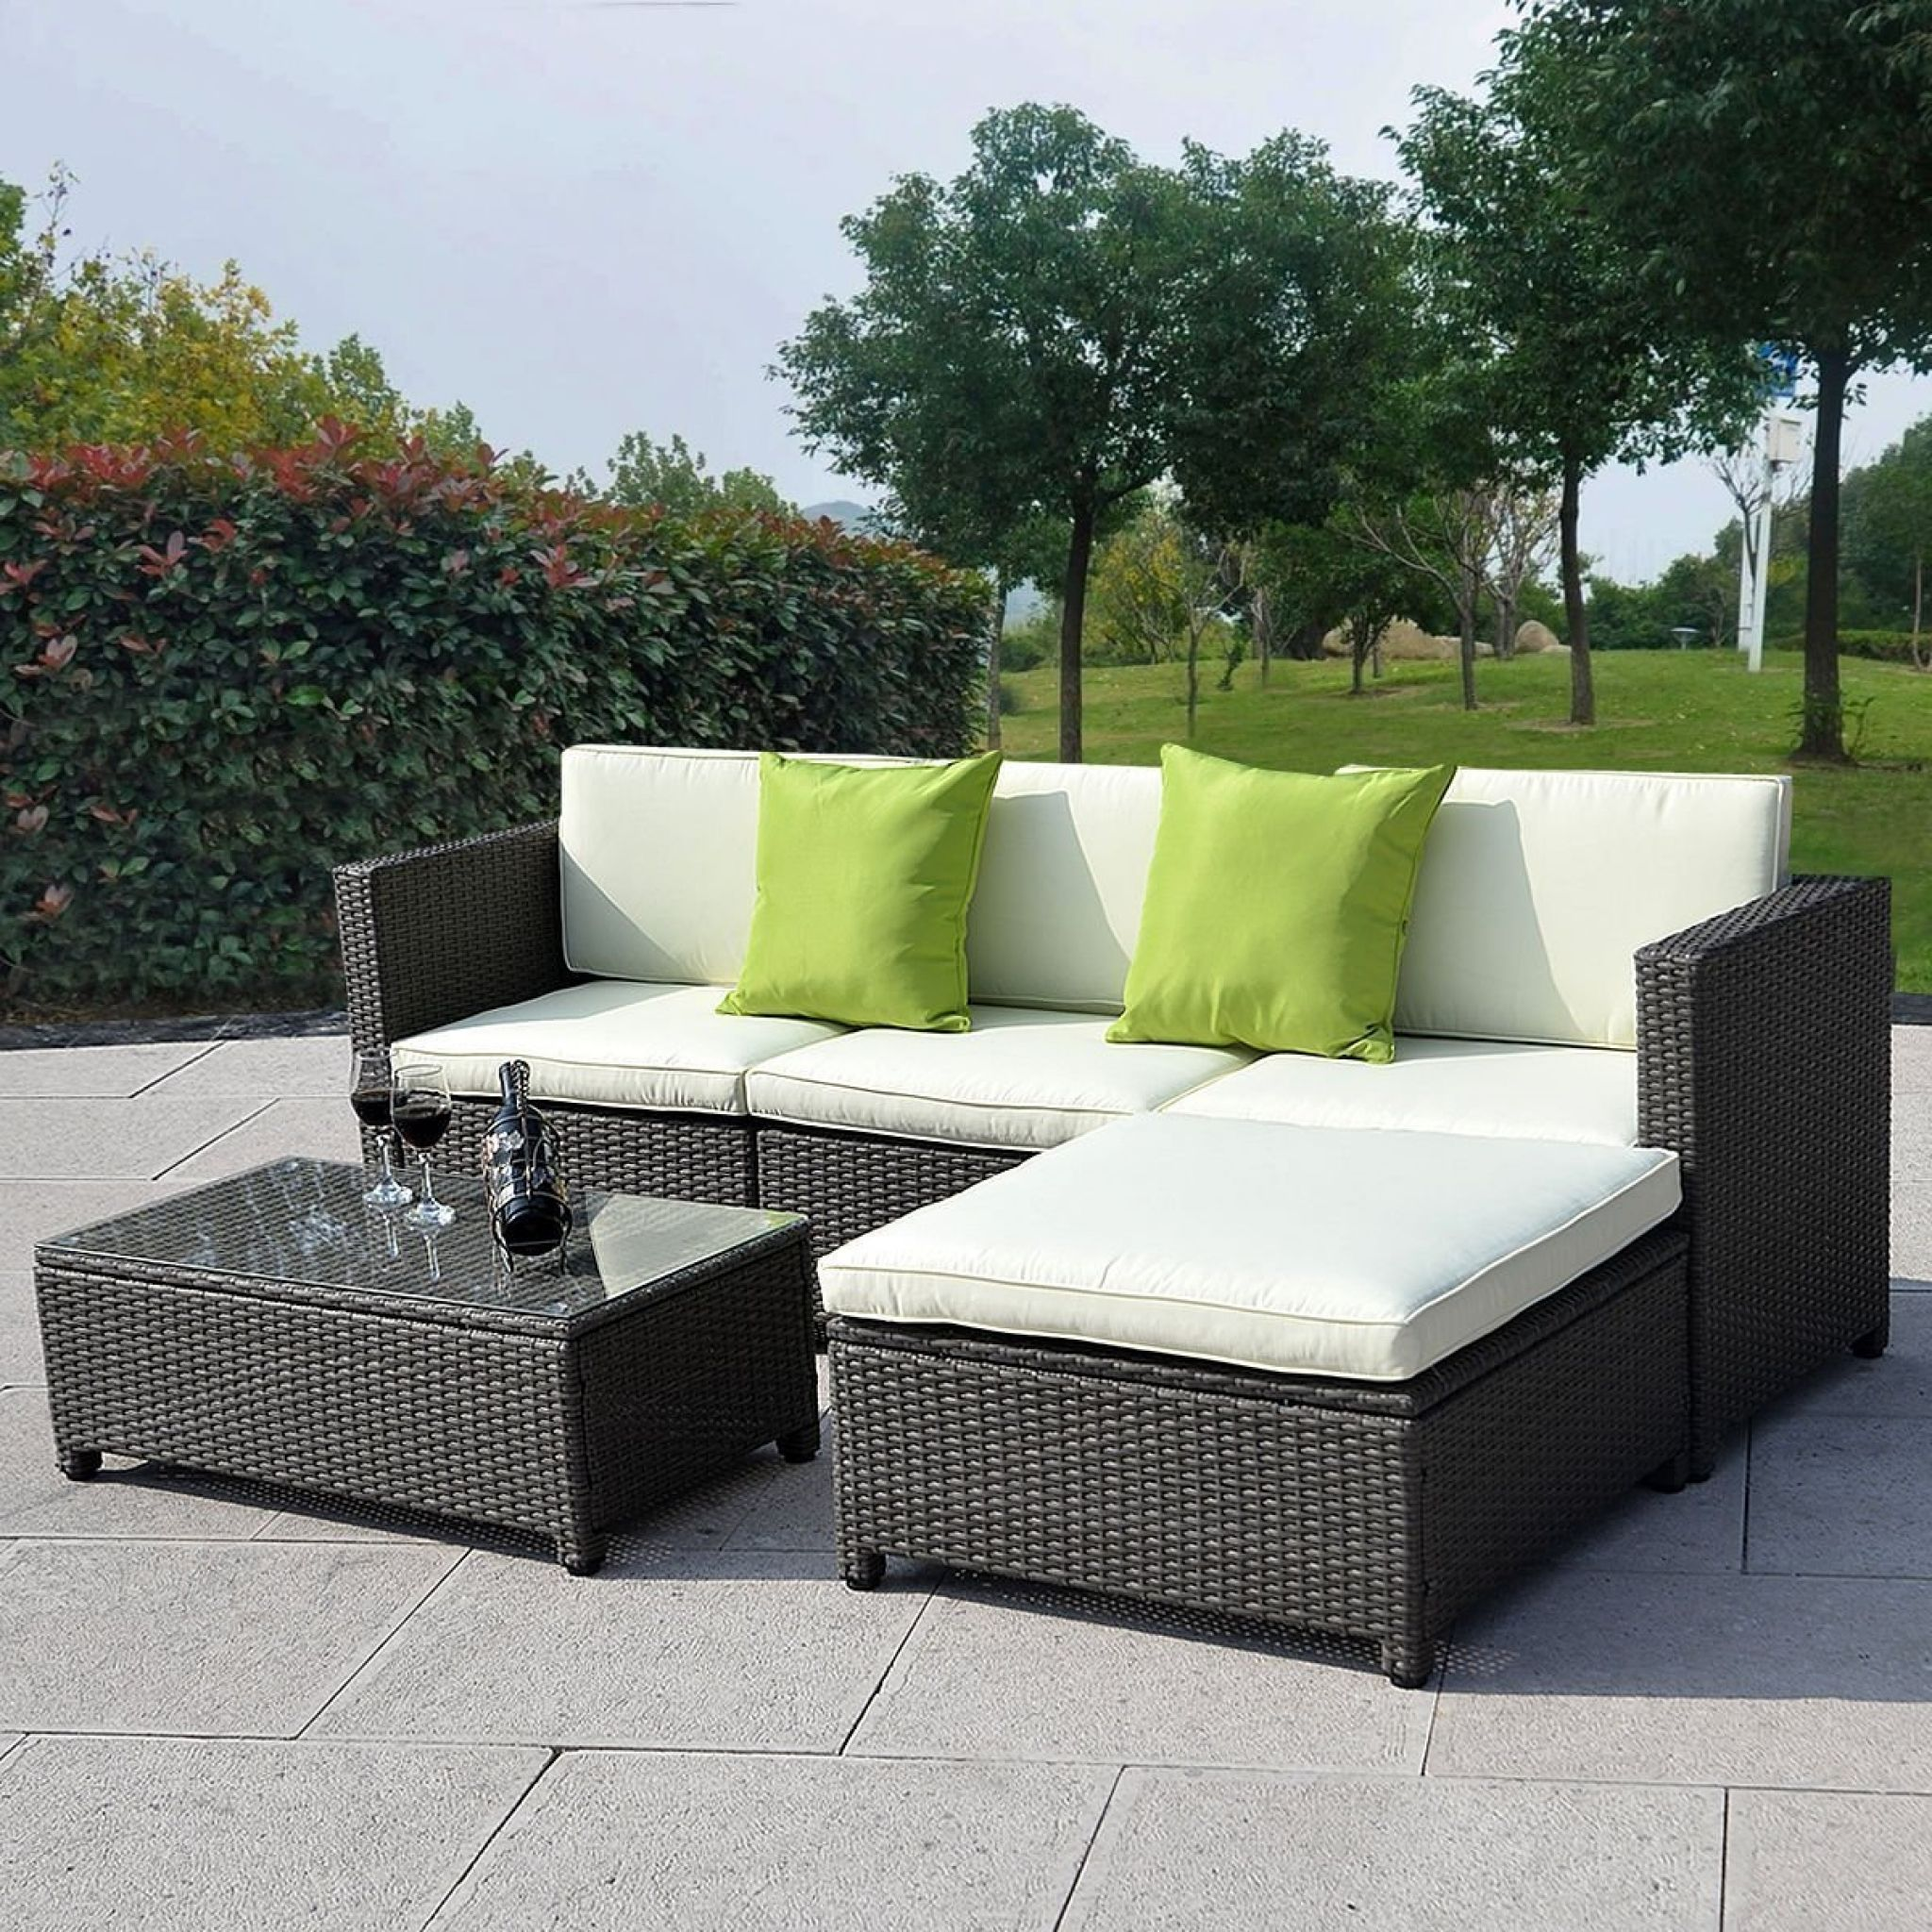 luxurypatio modern rattan tommy bahama outdoor furniture. Woven Wicker Outdoor Furniture - Interior House Paint Ideas Check More At Http:// Luxurypatio Modern Rattan Tommy Bahama M